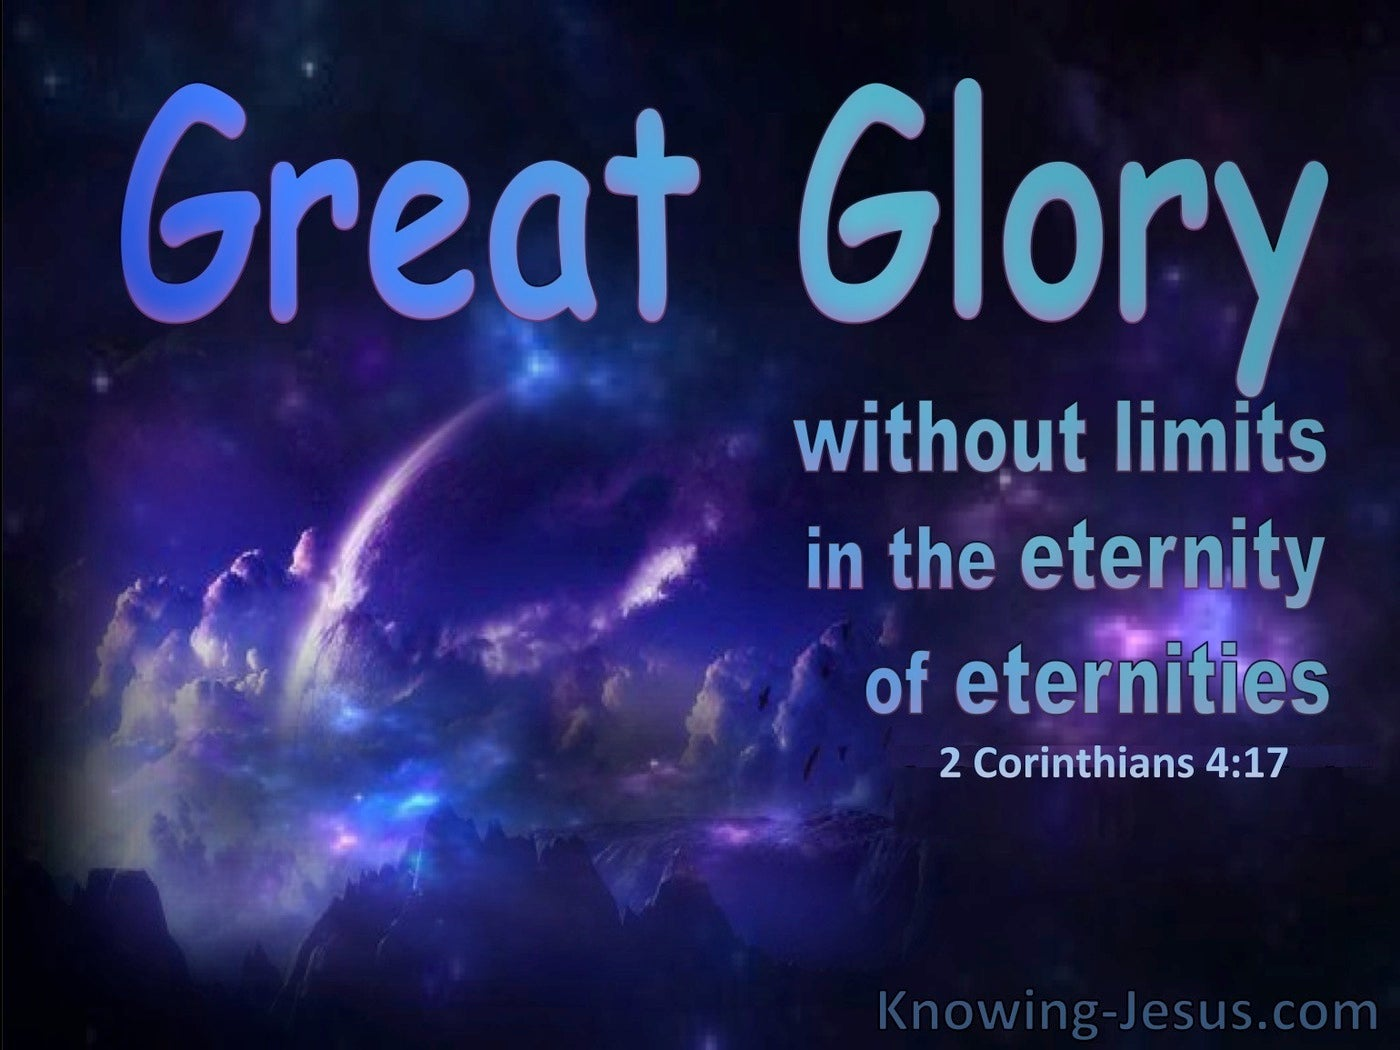 2 Corinthians 4:17 Great Glory Without Limits In Etermity (blue)